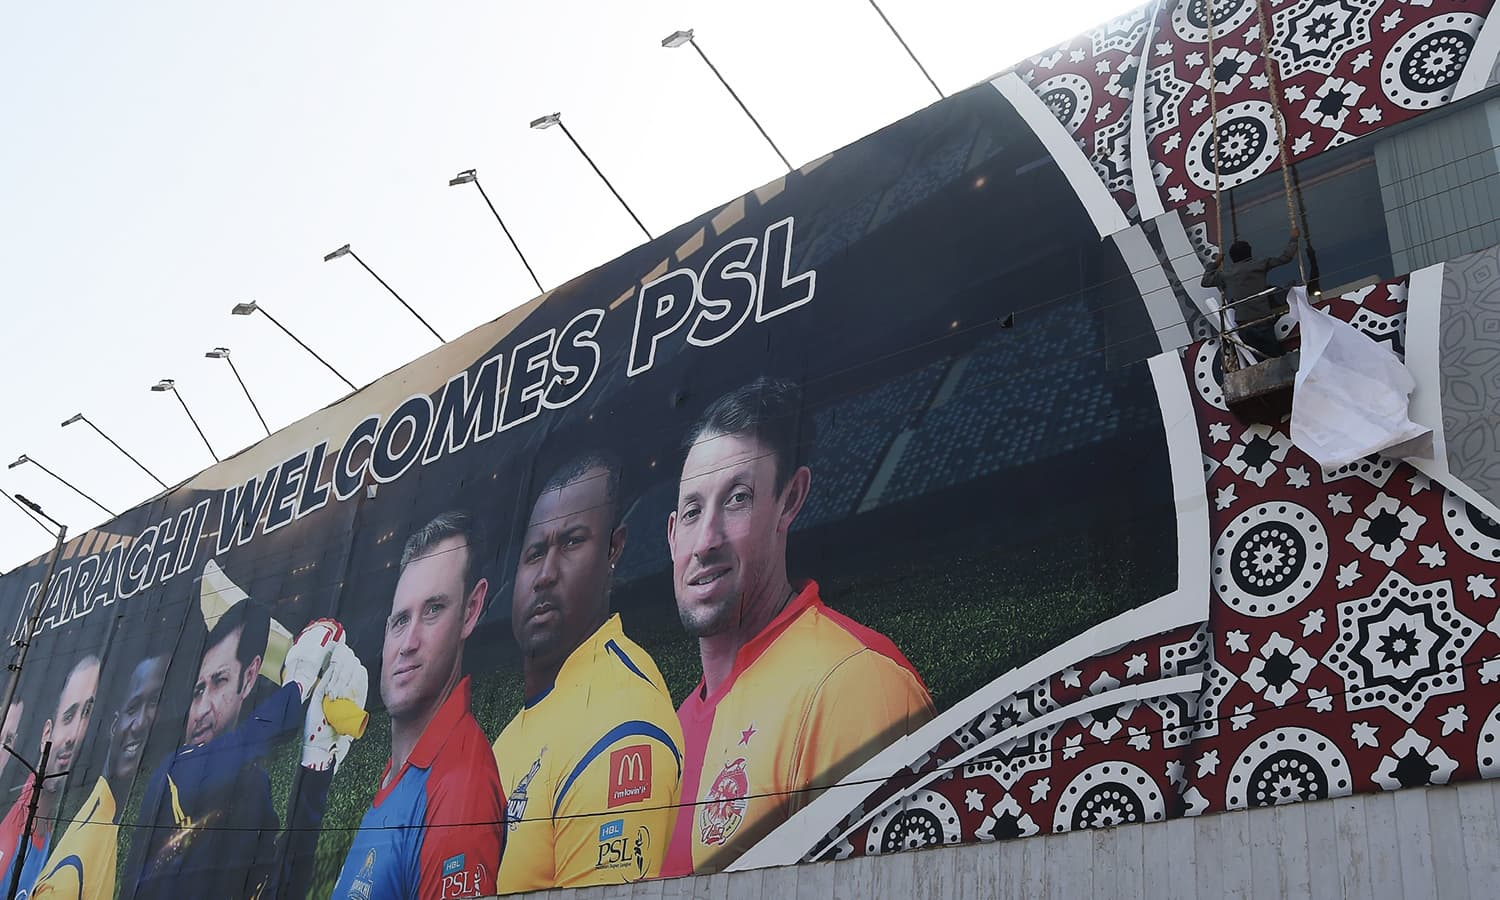 Workers fix a billboard featuring images of players ahead of the PSL final in Karachi on Tuesday. — AFP